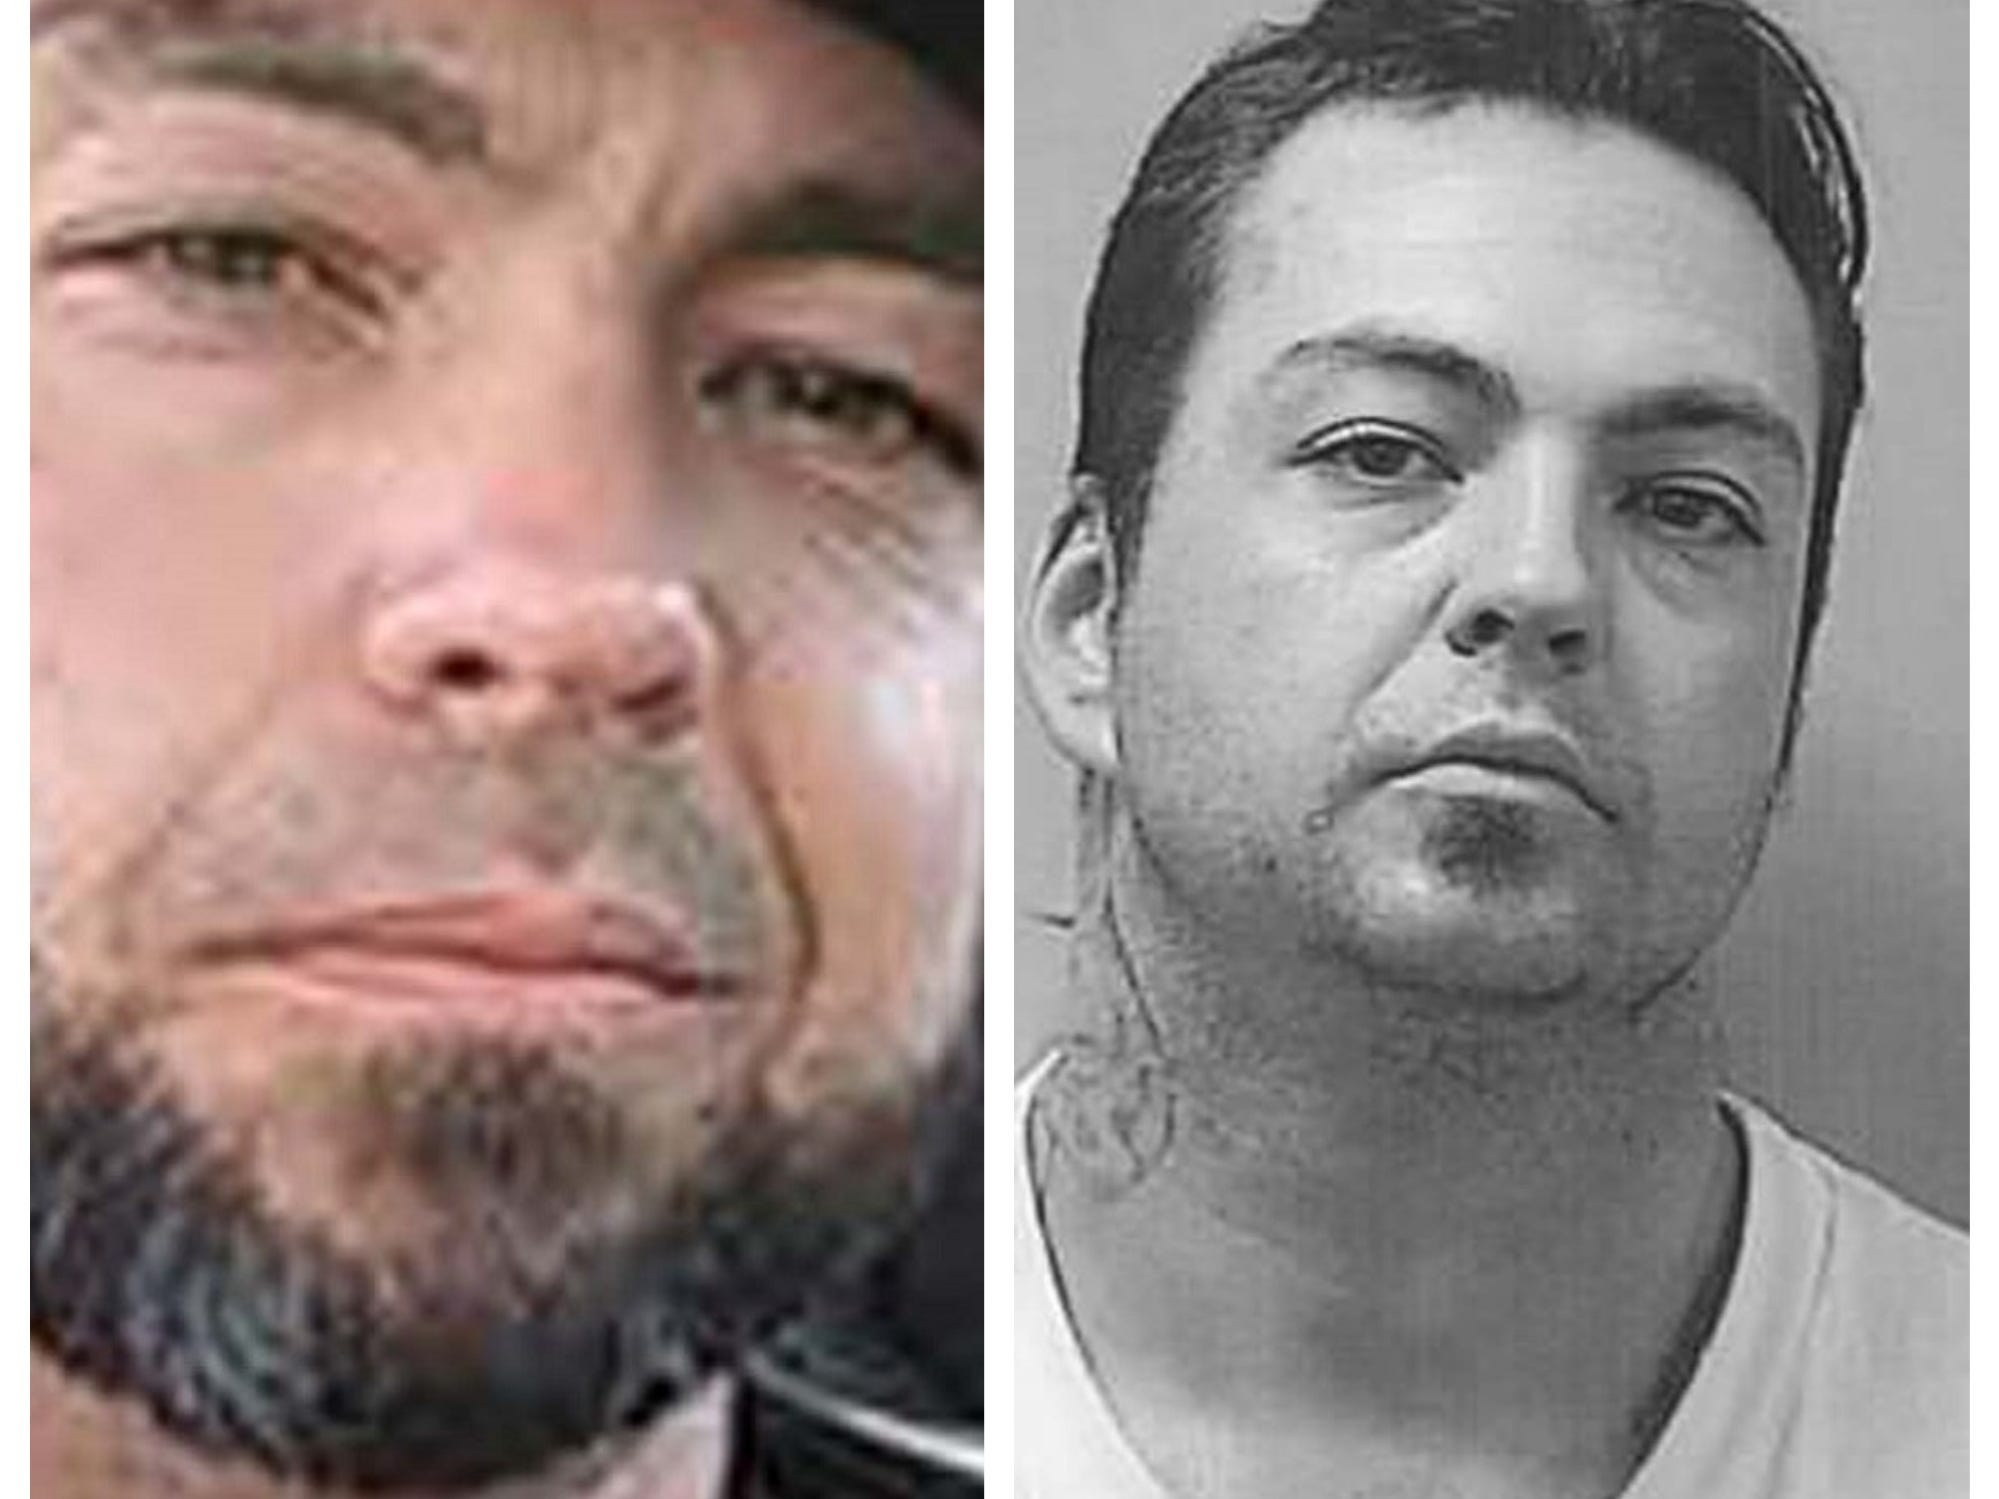 Shane Dewey Hively, 39, is wanted by the Nevada Department of Public Safety's Investigation Division for failing to appear in court for drug-related charges. He is 5 feet 10 inches tall and weighs 210 pounds. he has brown hair and hazel eyes and has multiple tattoos, including a cross on his left arm and a skull on his right calf. He also has a tattoo of Cat in the Hat on his right ankle. He is considered armed and dangerous and has violent tendencies. He is known to abuse drugs and alcohol.